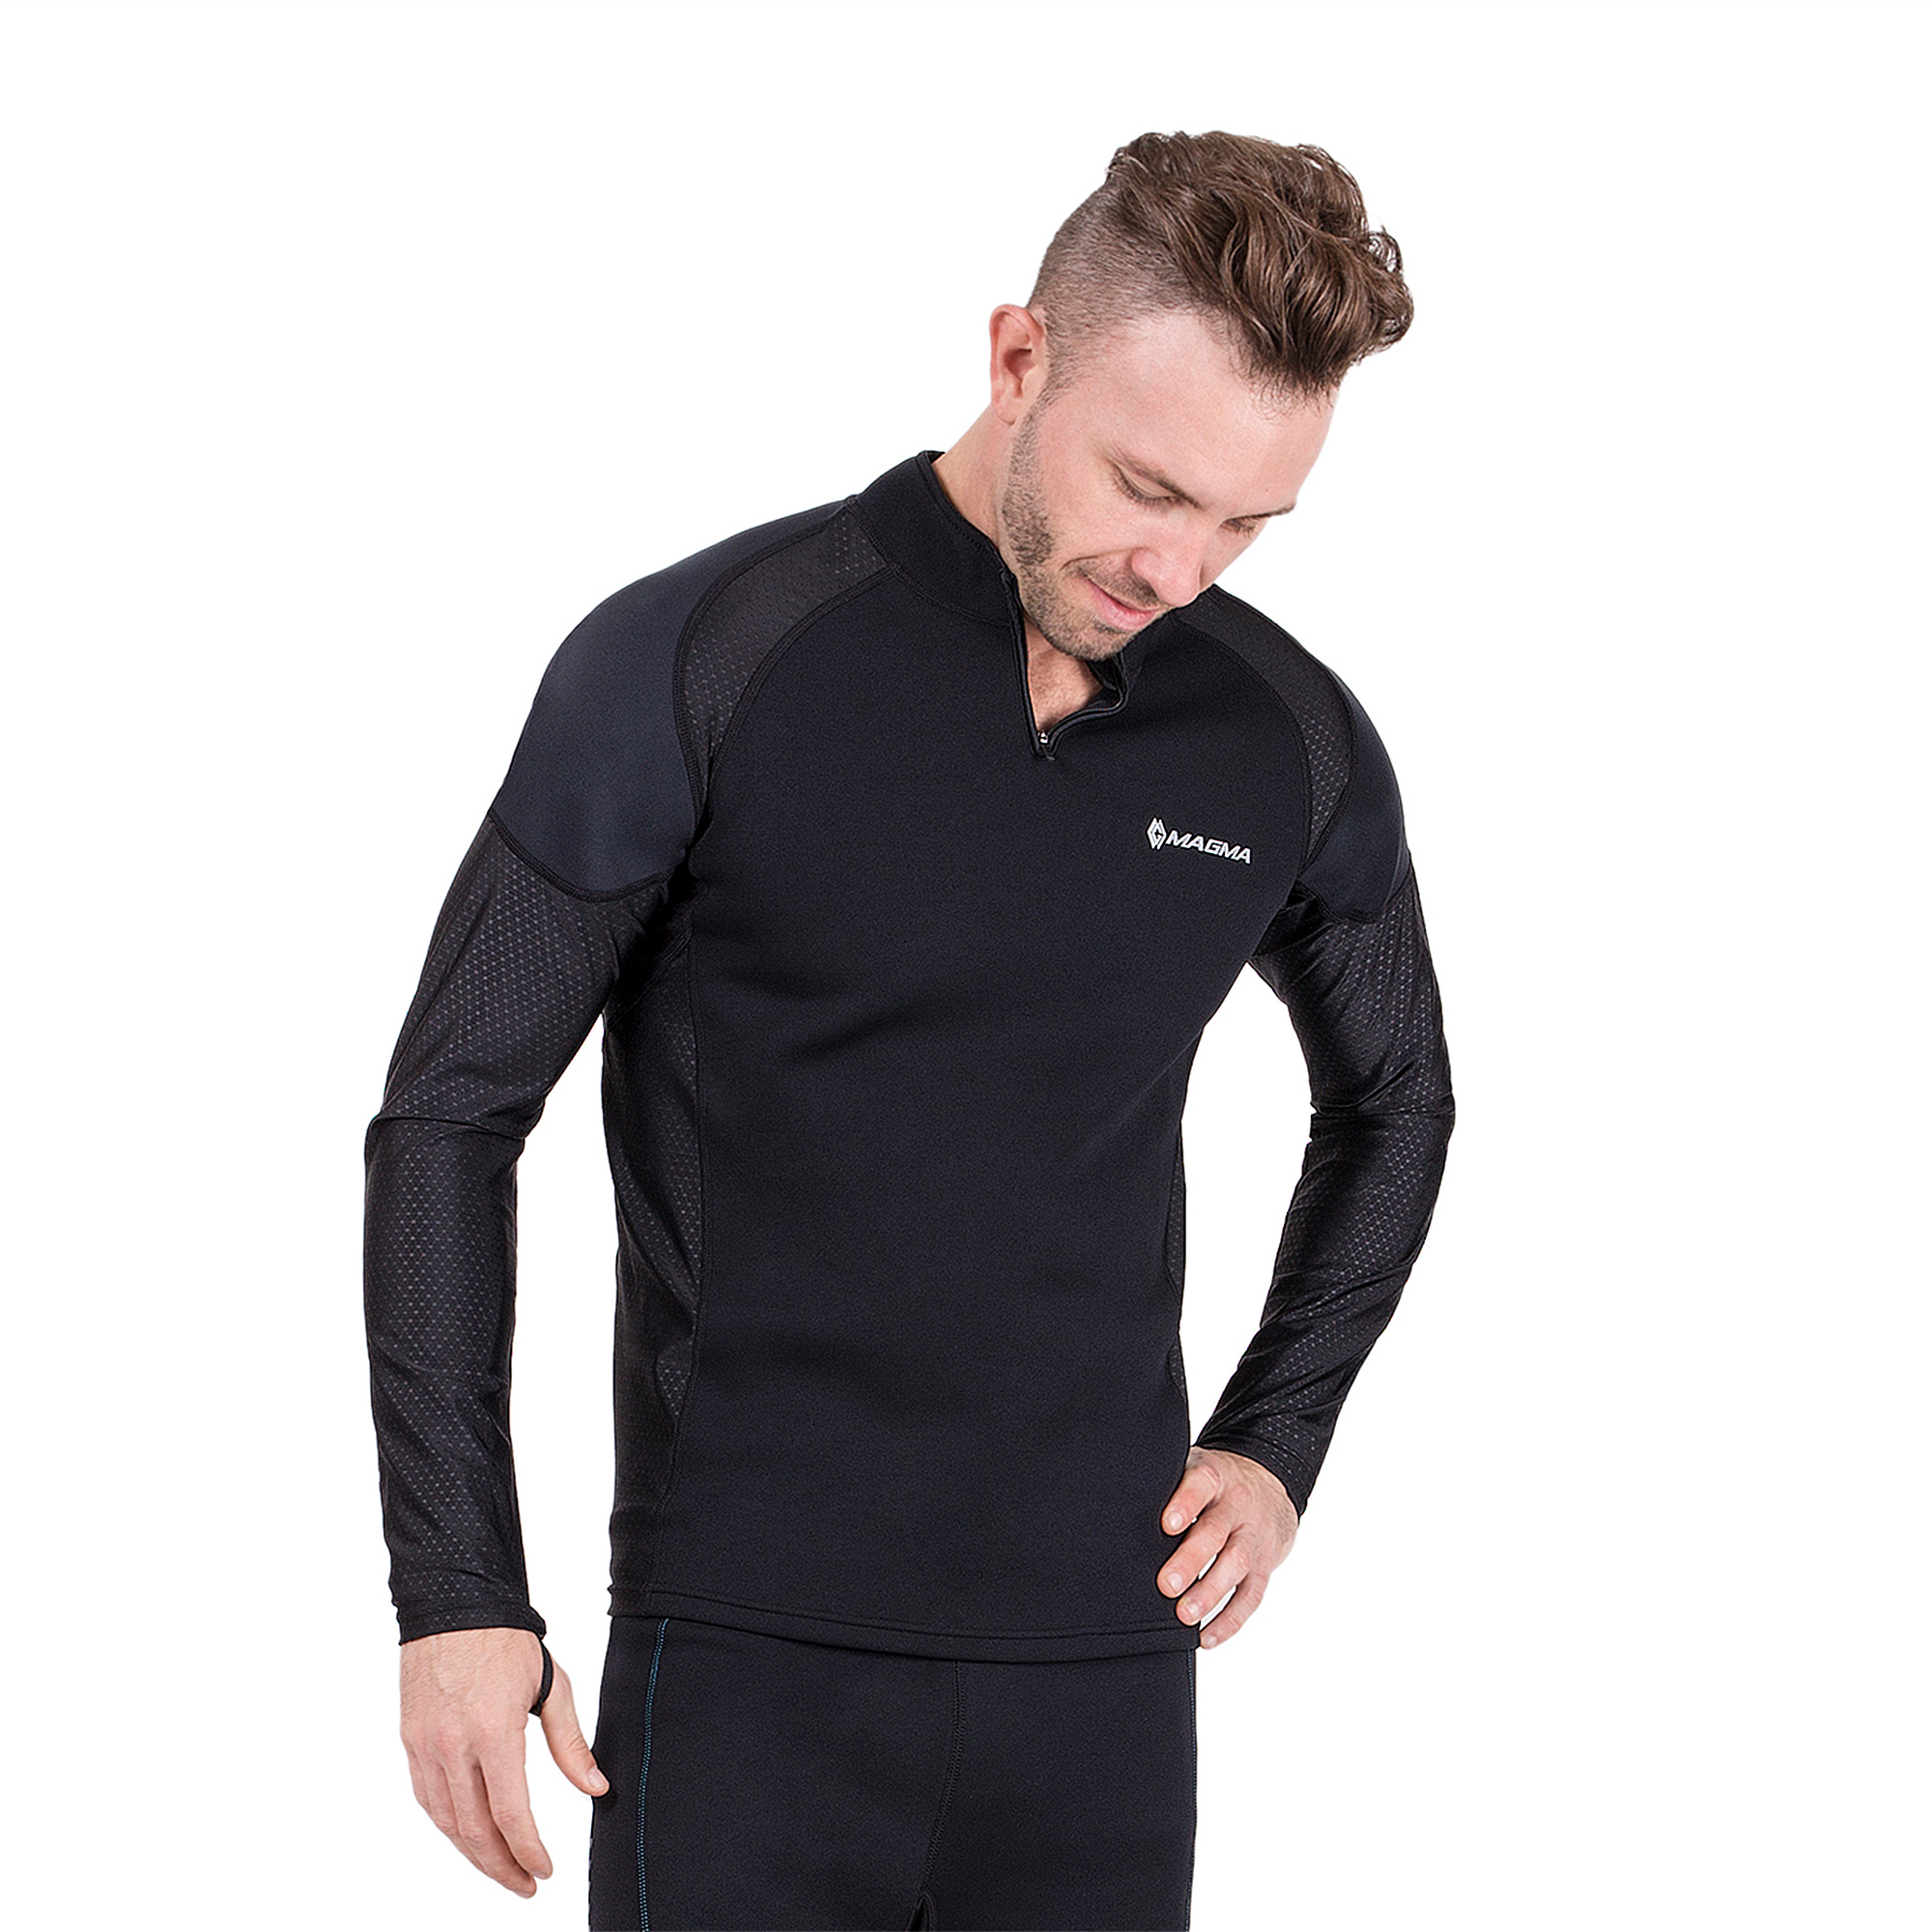 44e86058d NonZero Gravity Men s Sauna Shirt